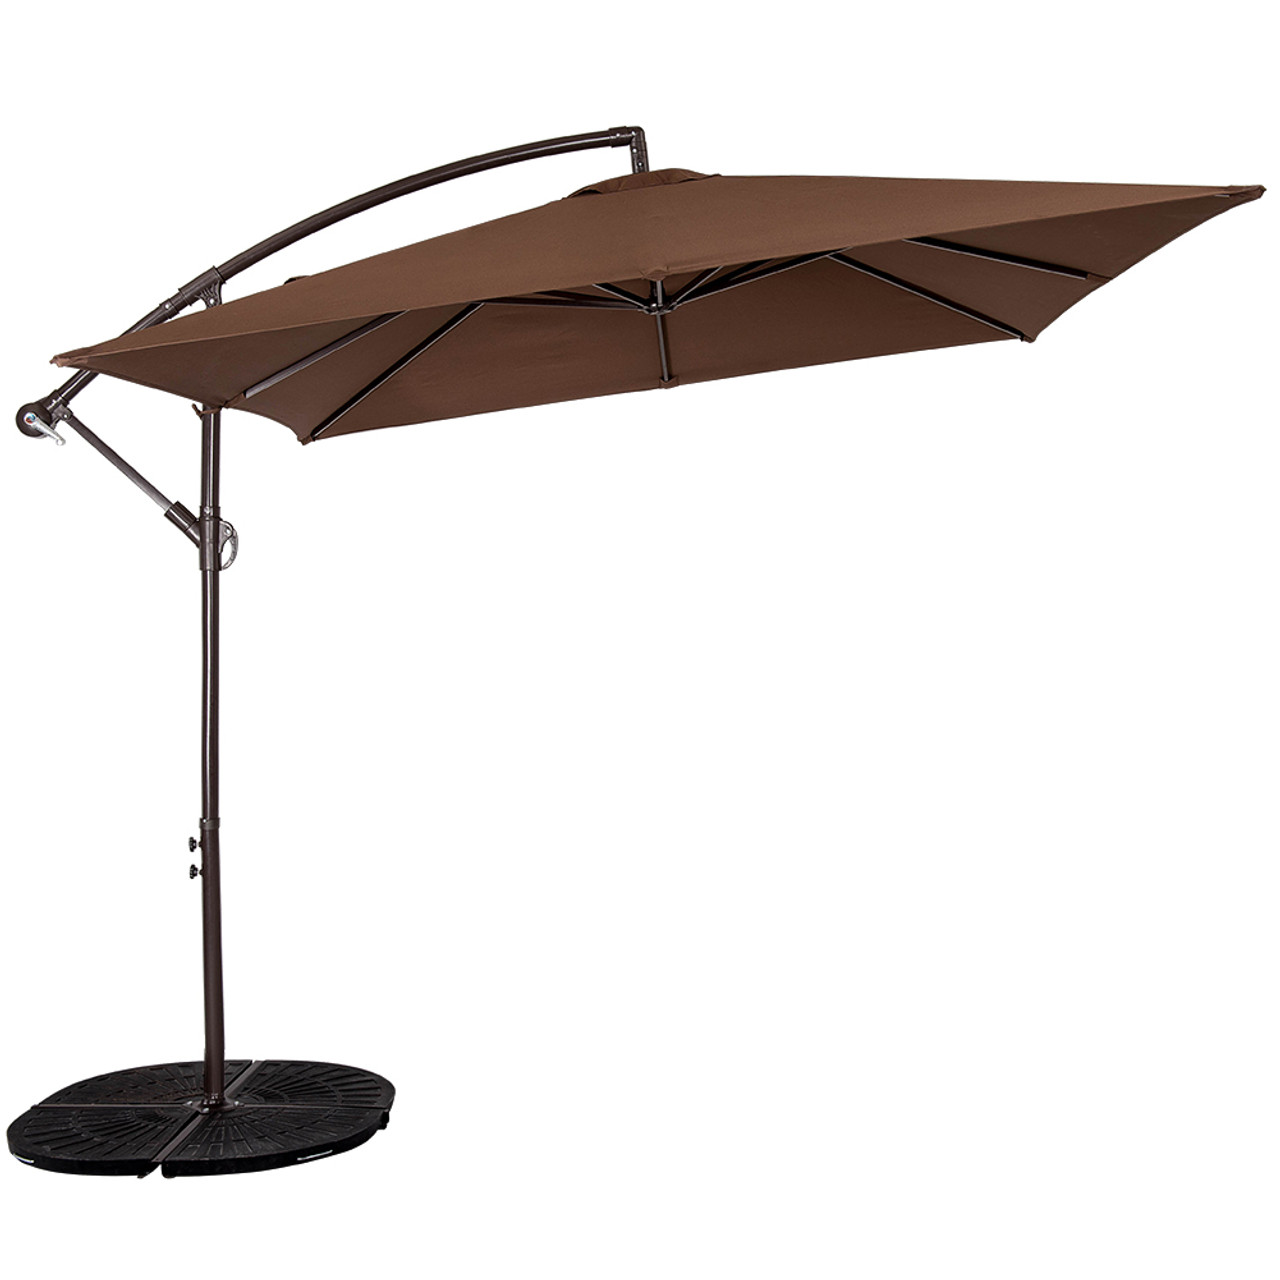 star won wont offset the umbrellas life cantilever view t obstruct patio